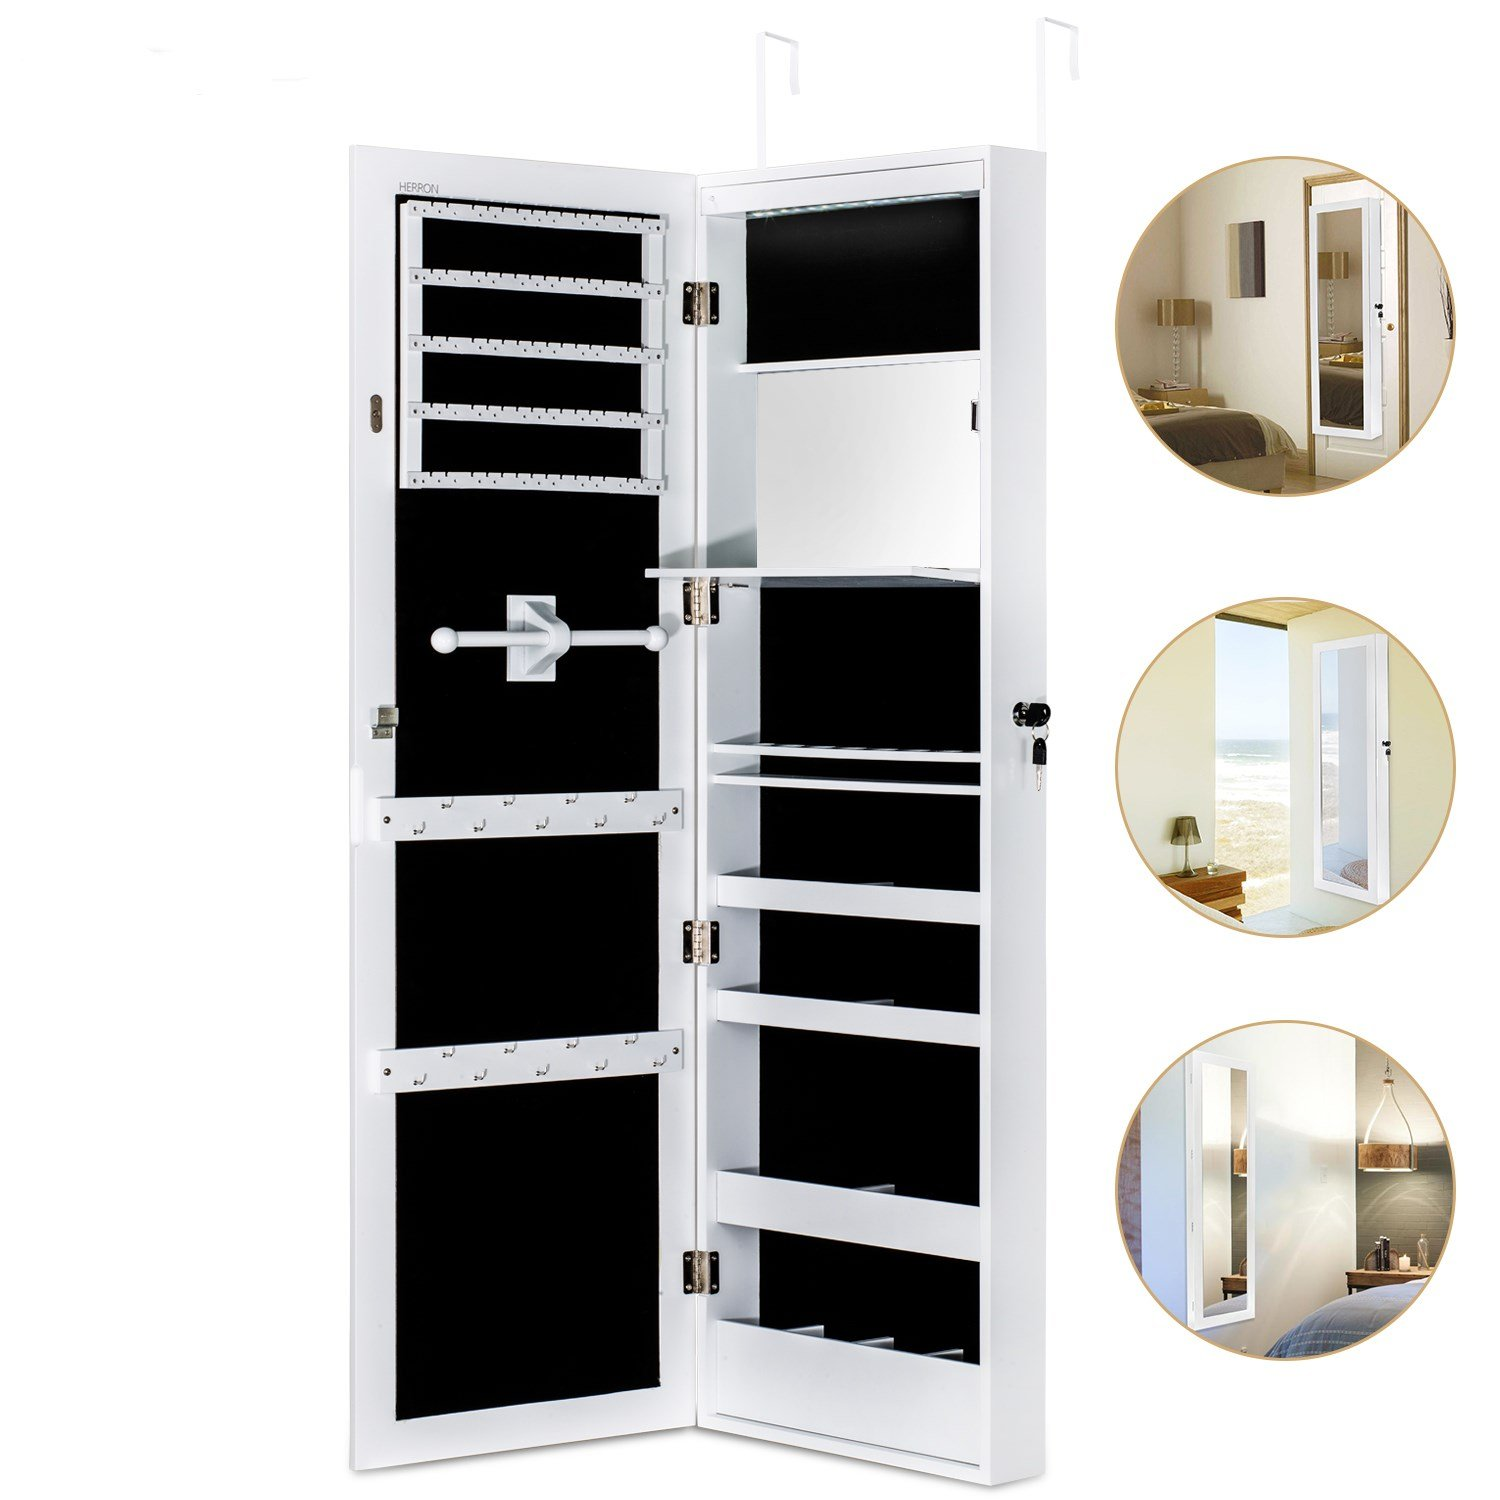 Merveilleux HERRON Jewelry Cabinet Armoire With Mirror Led Light Wall Door Mounted  Organizer Storage,White